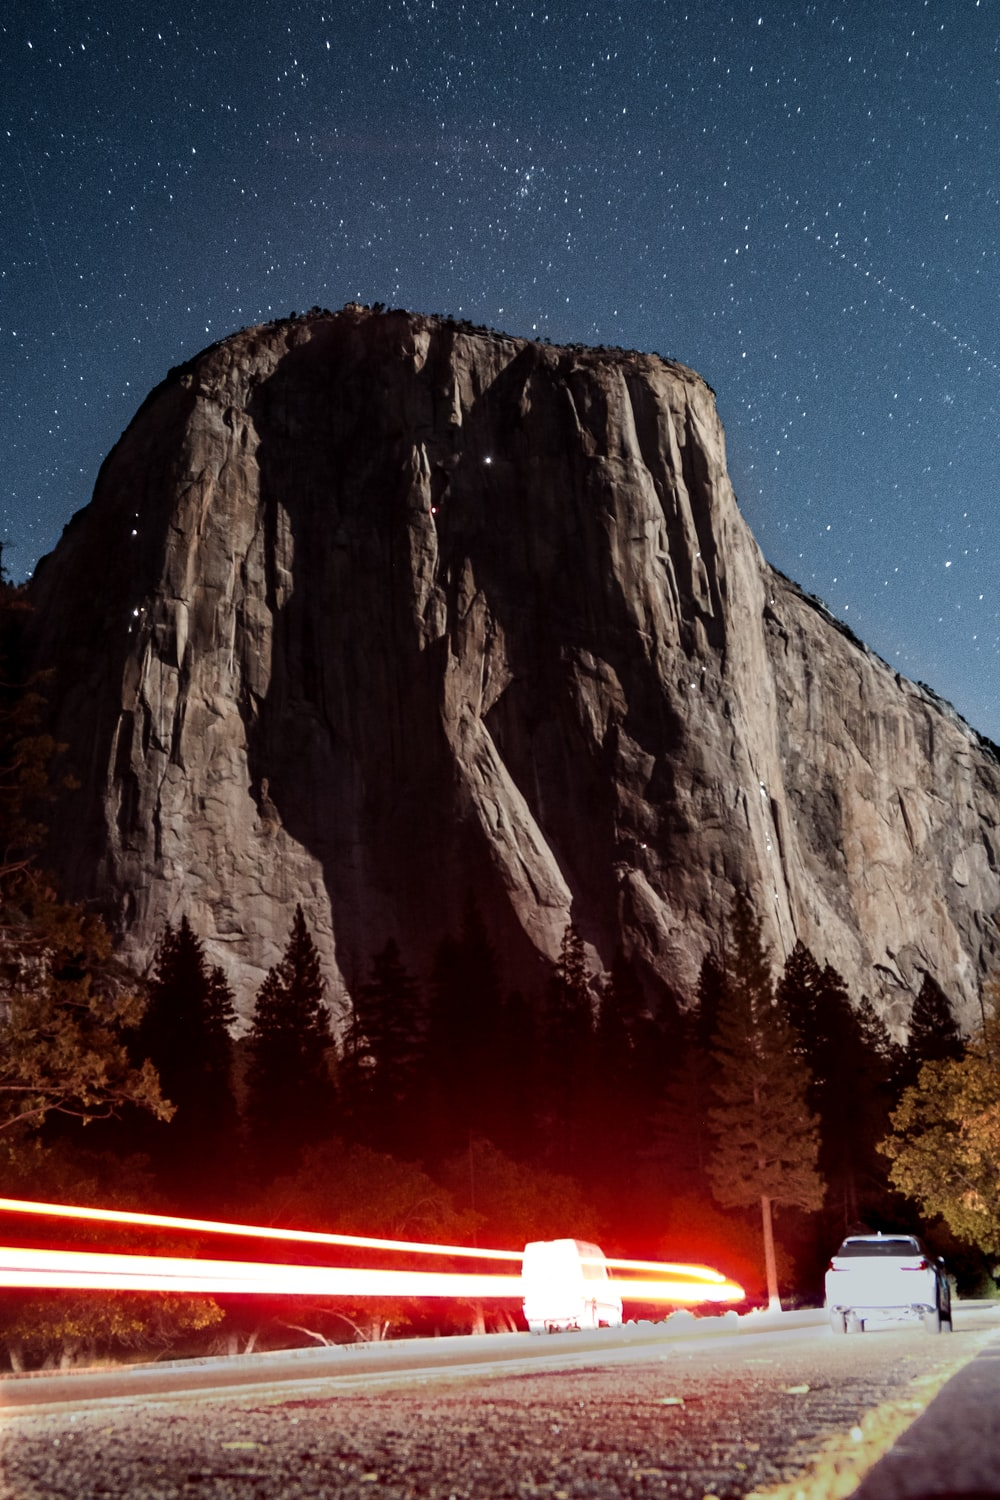 light streak photography of vehicle in the middle of the street near rocky mountain